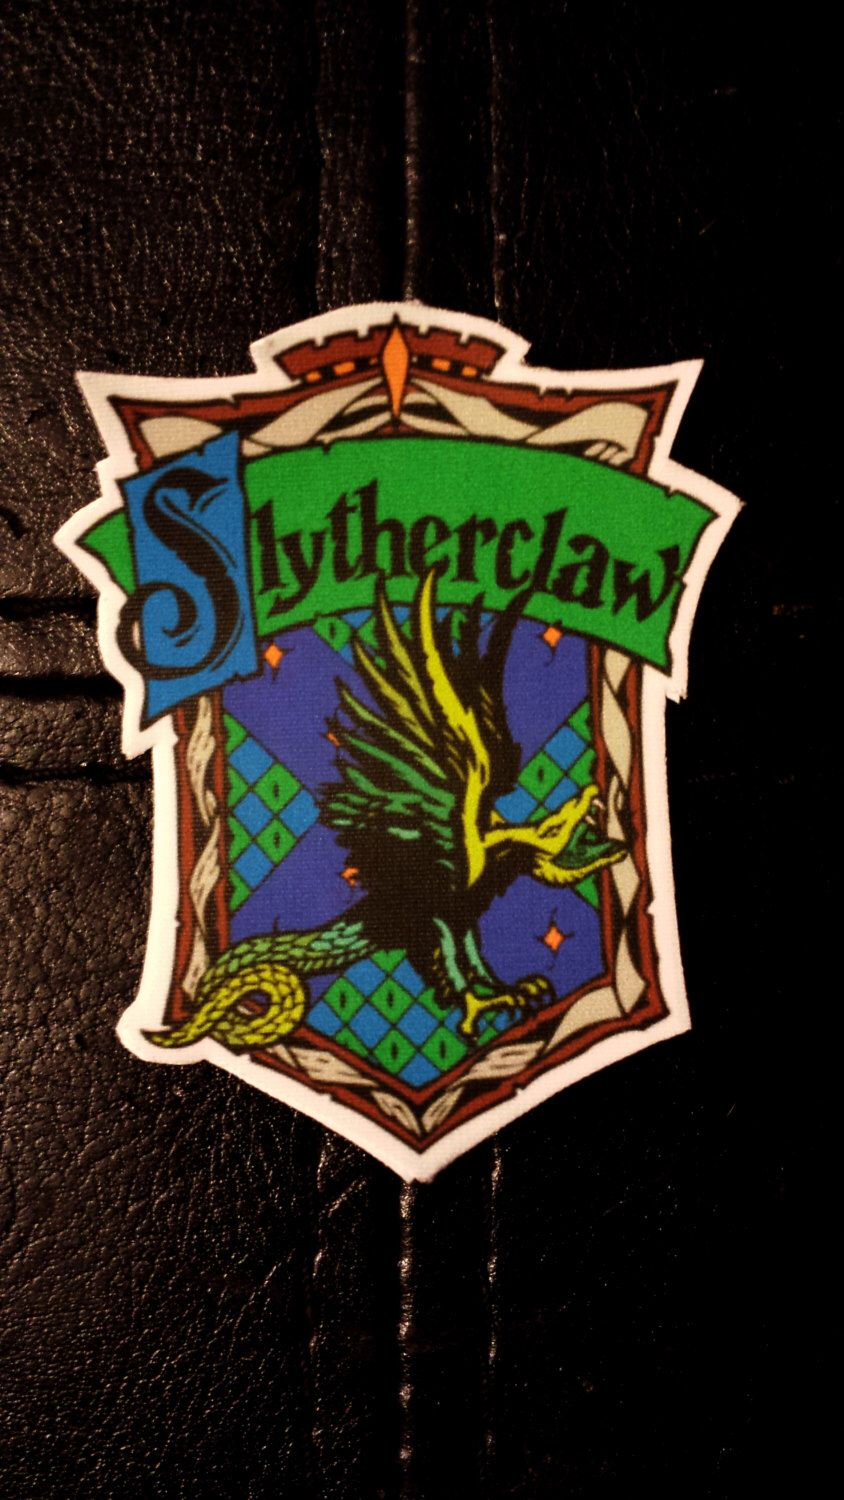 Harry Potter Slytherclaw Cross House Crest Vinyl Sticker By CrestCrossed On Etsy Listing 203645522